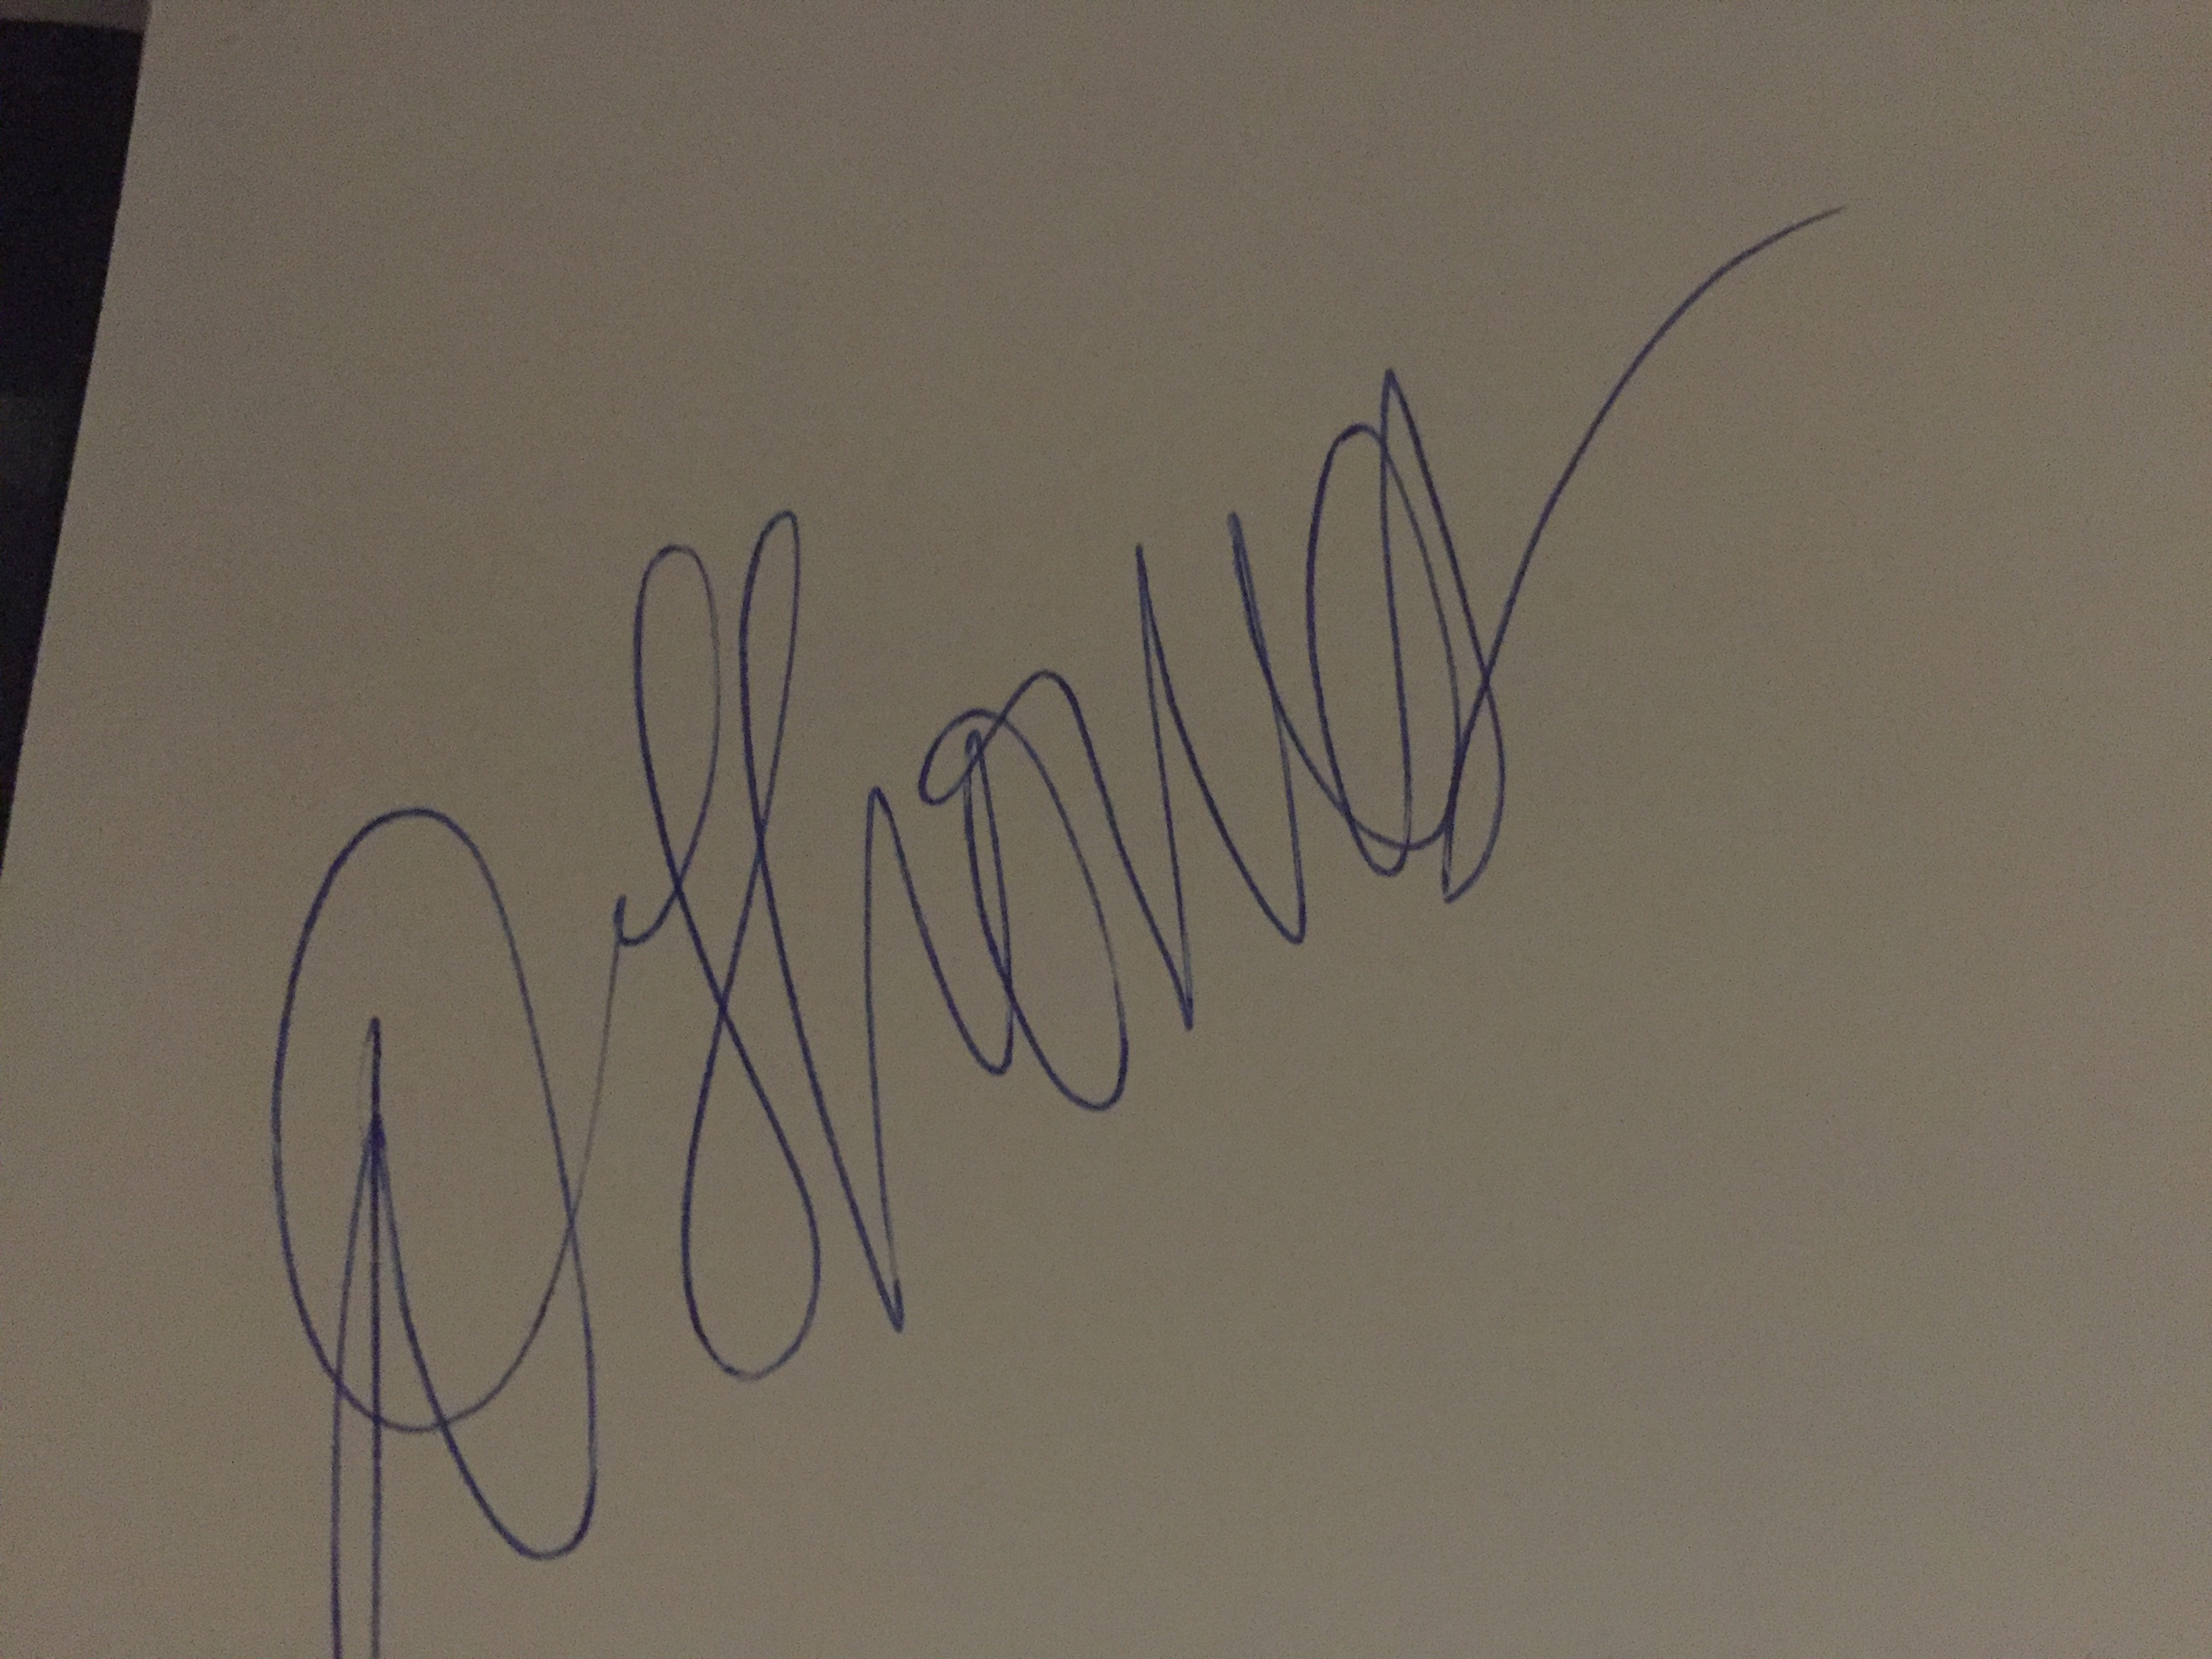 Dawn thomas's Signature